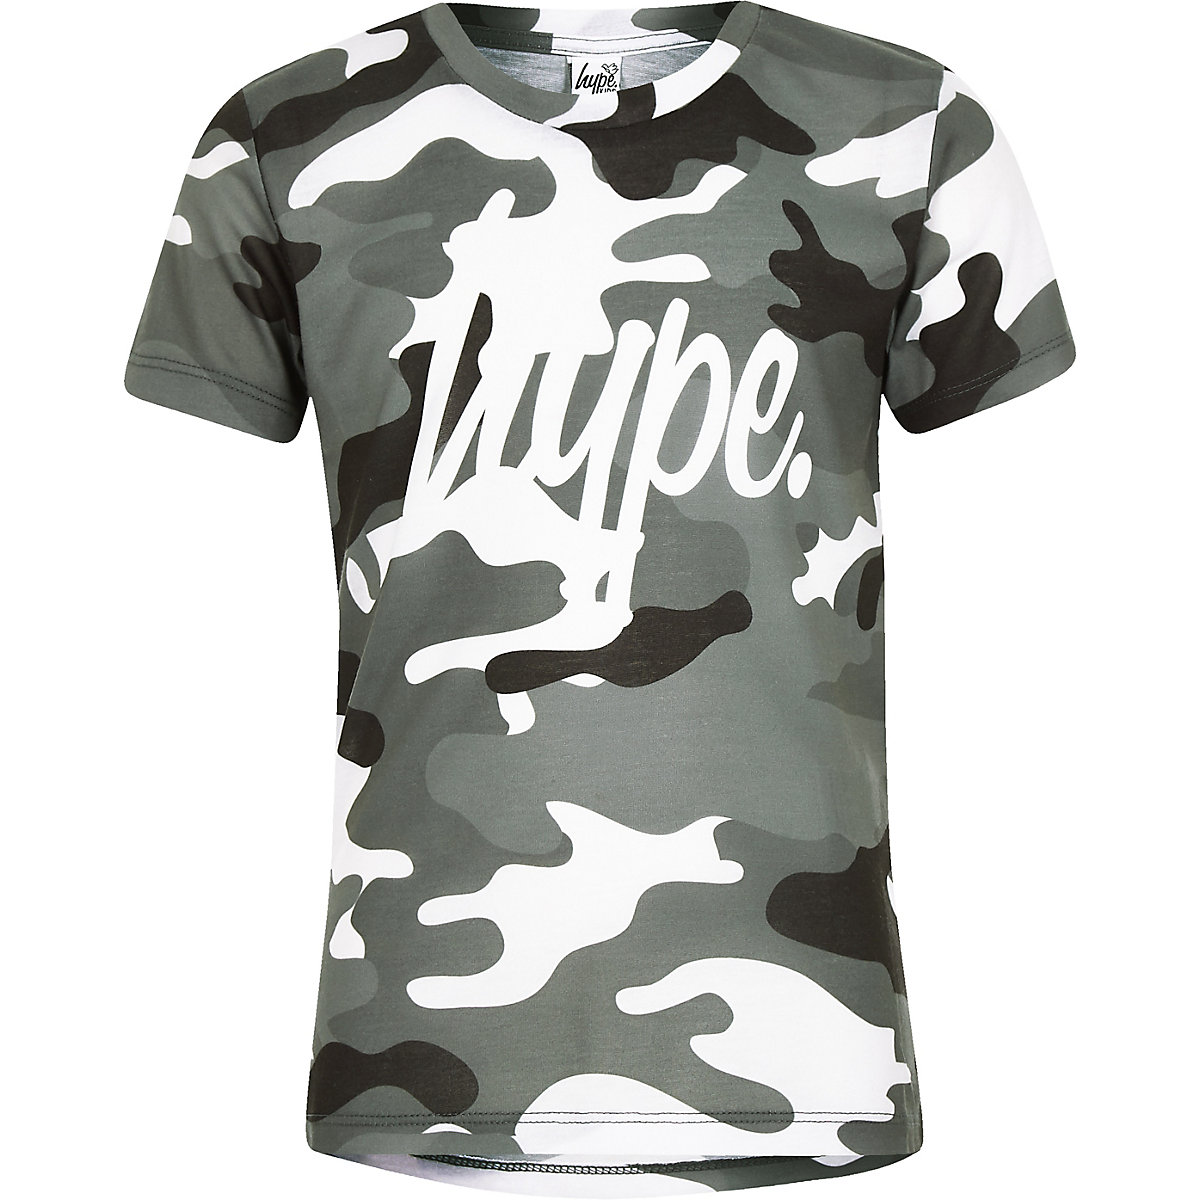 Boys Hype grey camo T-shirt